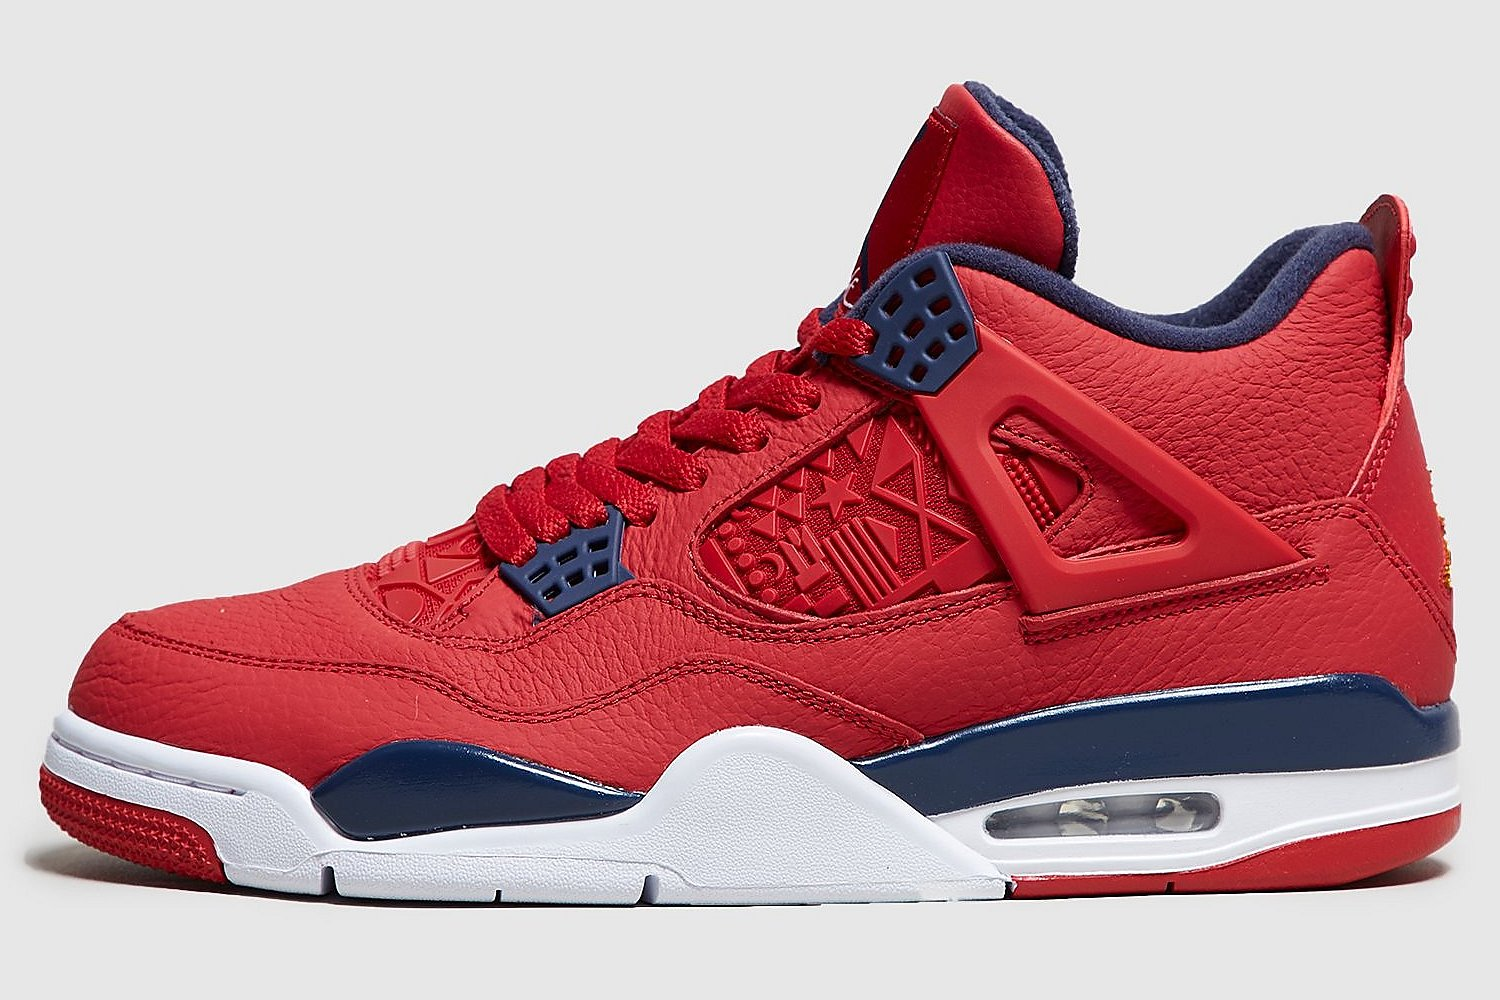 nike-jordan air jordan 4-heren-rood-ci1184-617-rode-sneakers ...